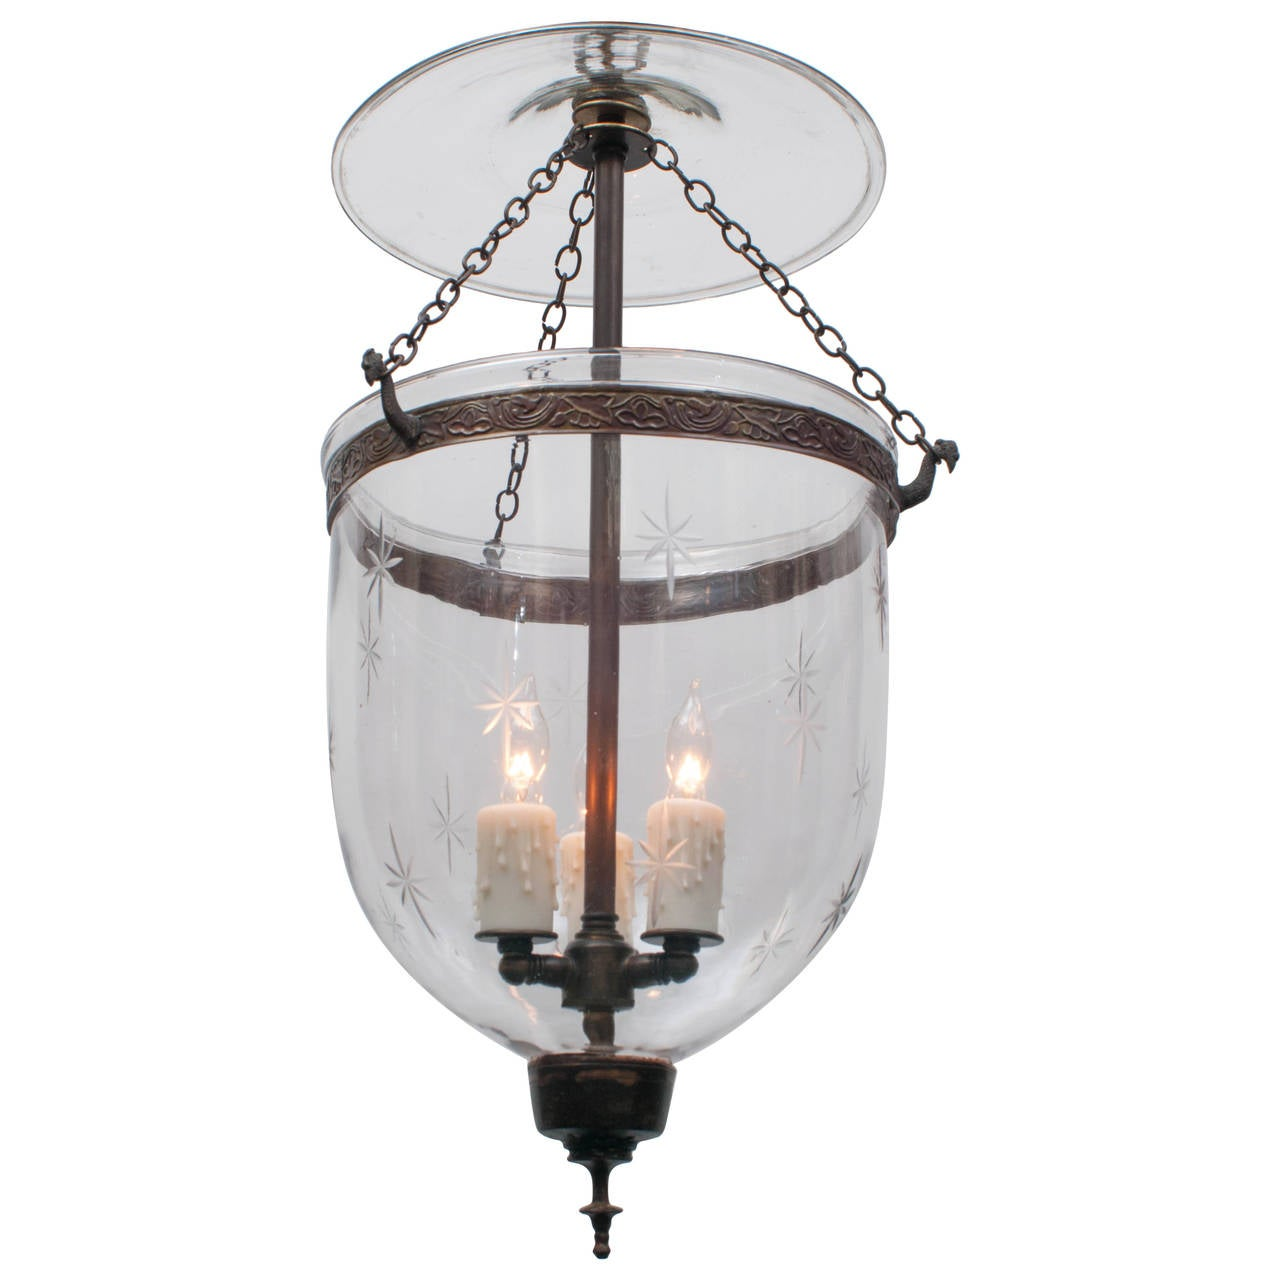 This Etched Star Lantern, Belgium, circa 1850 is no longer available.